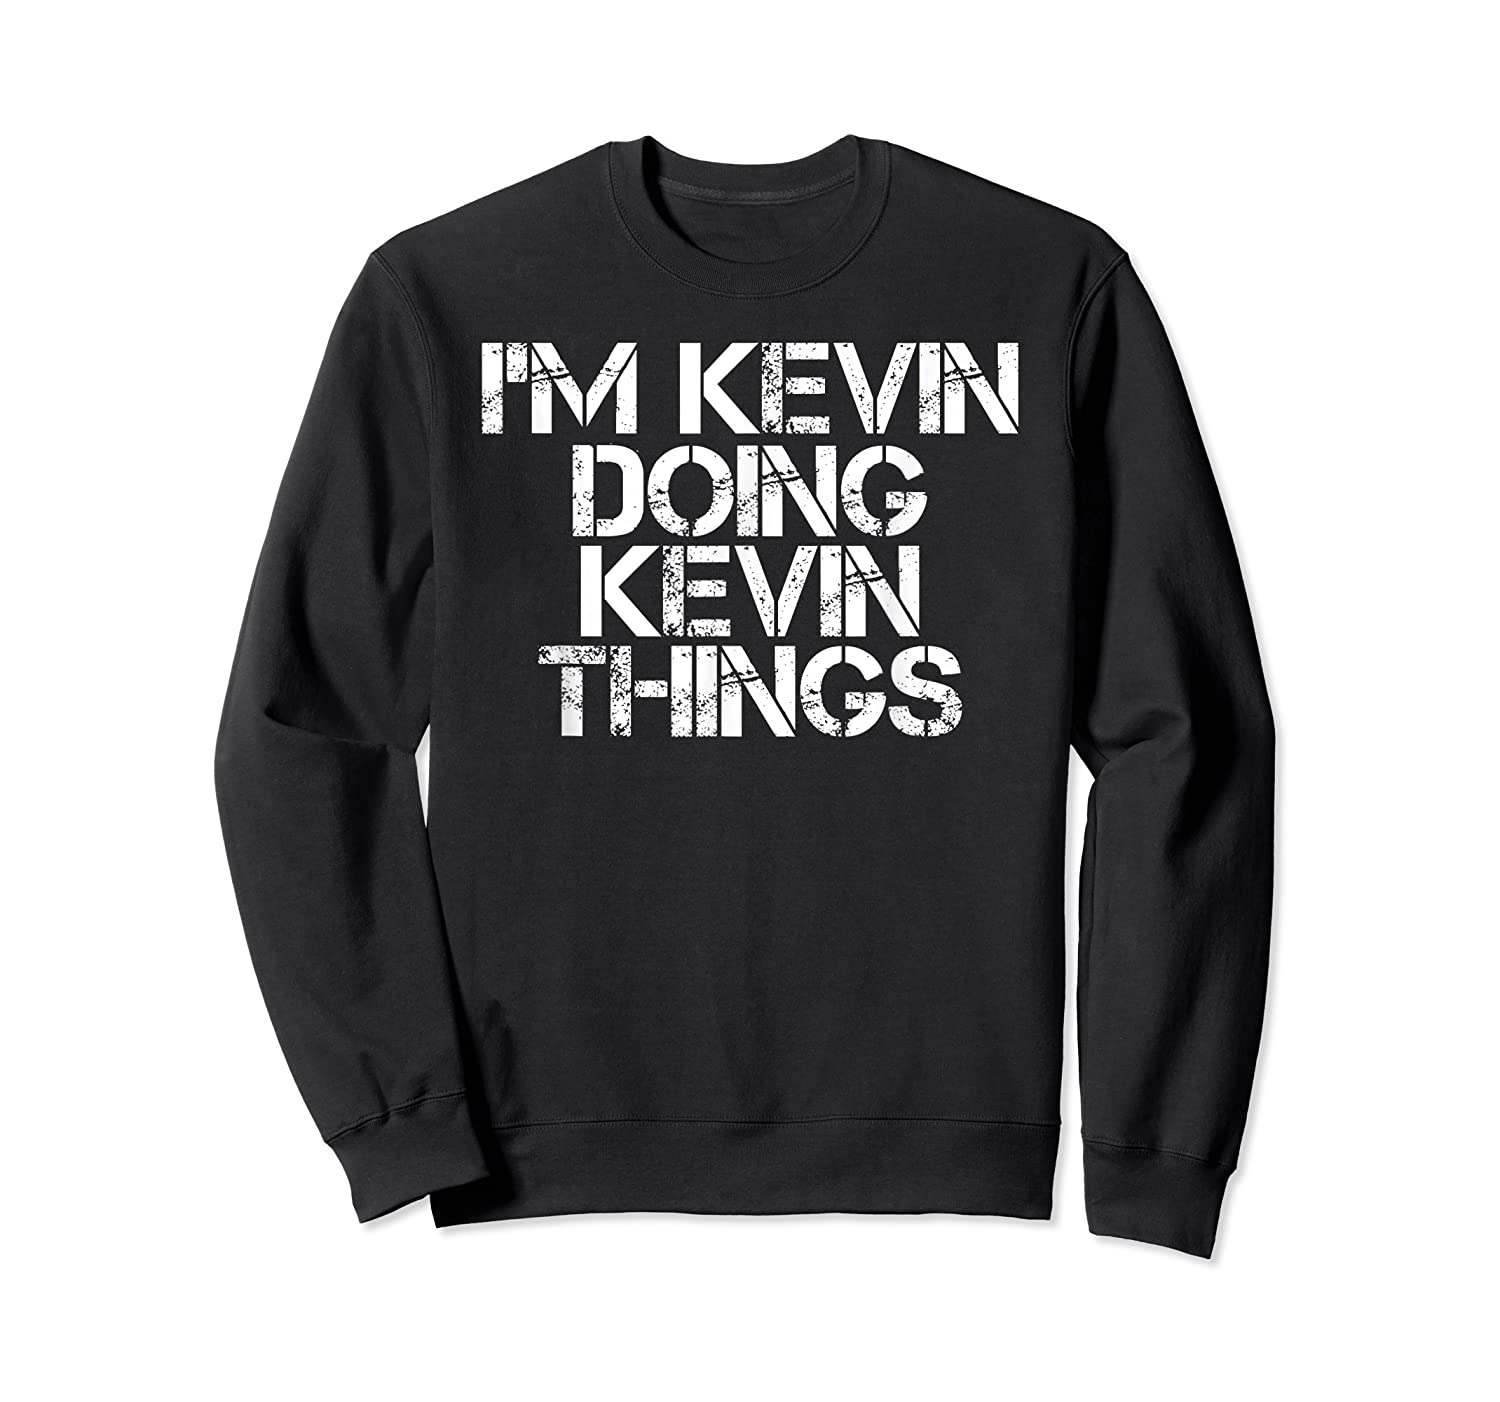 I'm Kevin Doing Kevin Things Funny Christmas Gift Idea Shirts Crewneck Sweater